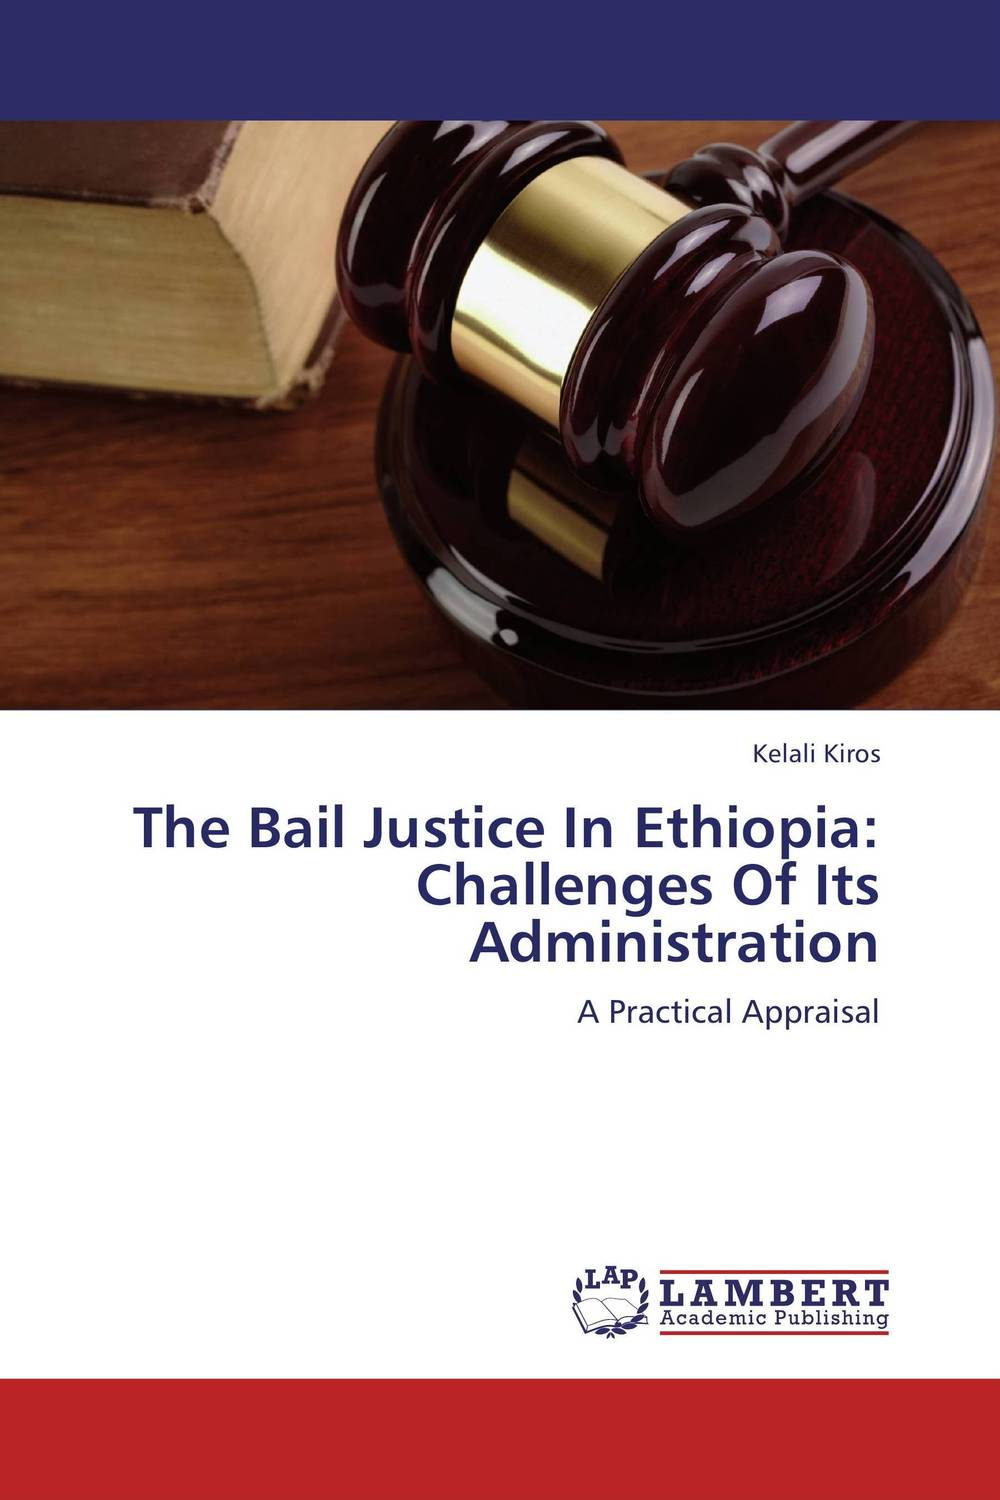 где купить The Bail Justice In Ethiopia: Challenges Of Its Administration по лучшей цене